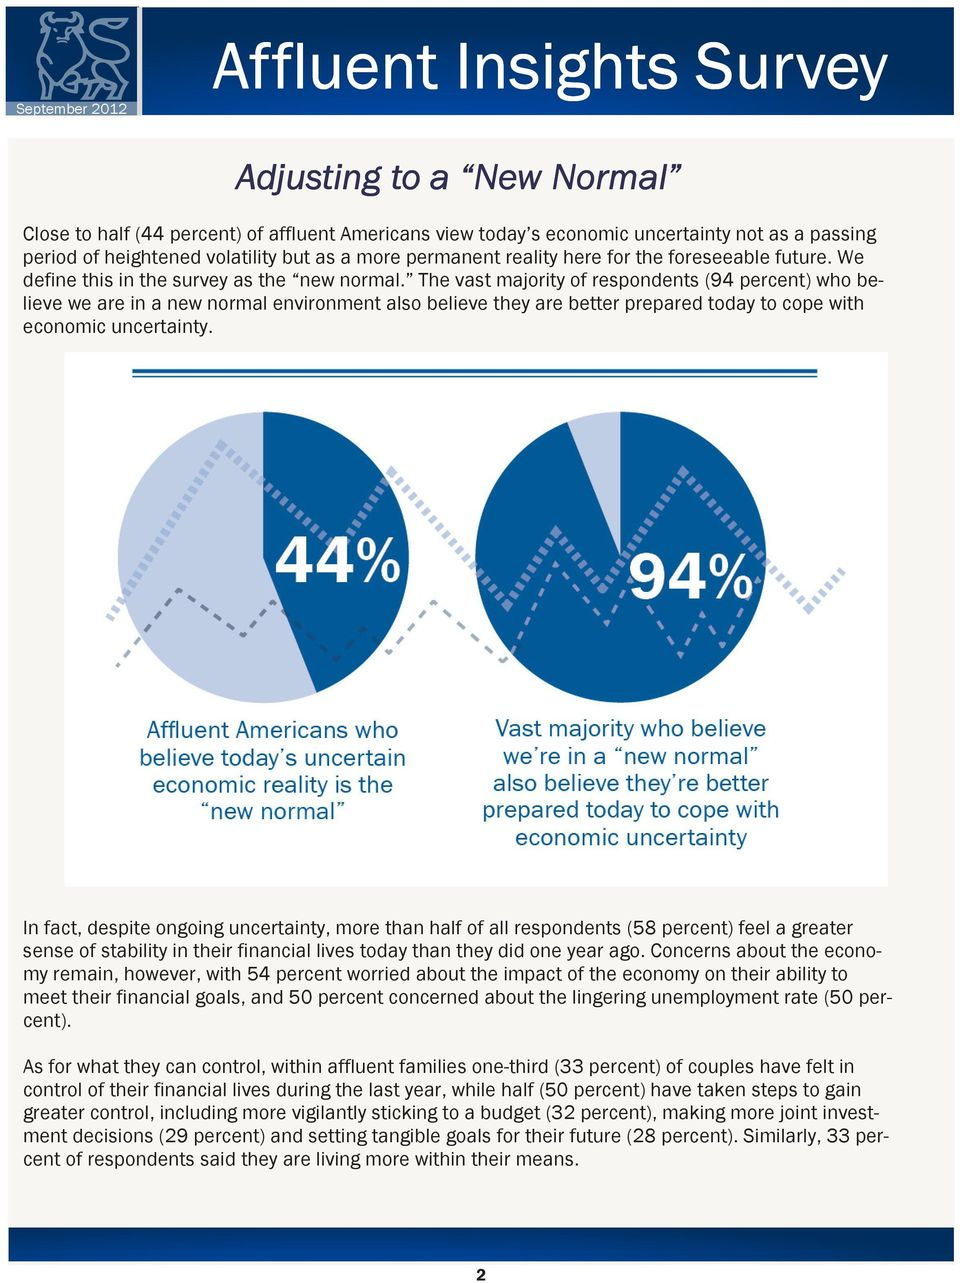 The vast majority of respondents (94 percent) who believe we are in a new normal environment also believe they are better prepared today to cope with economic uncertainty.